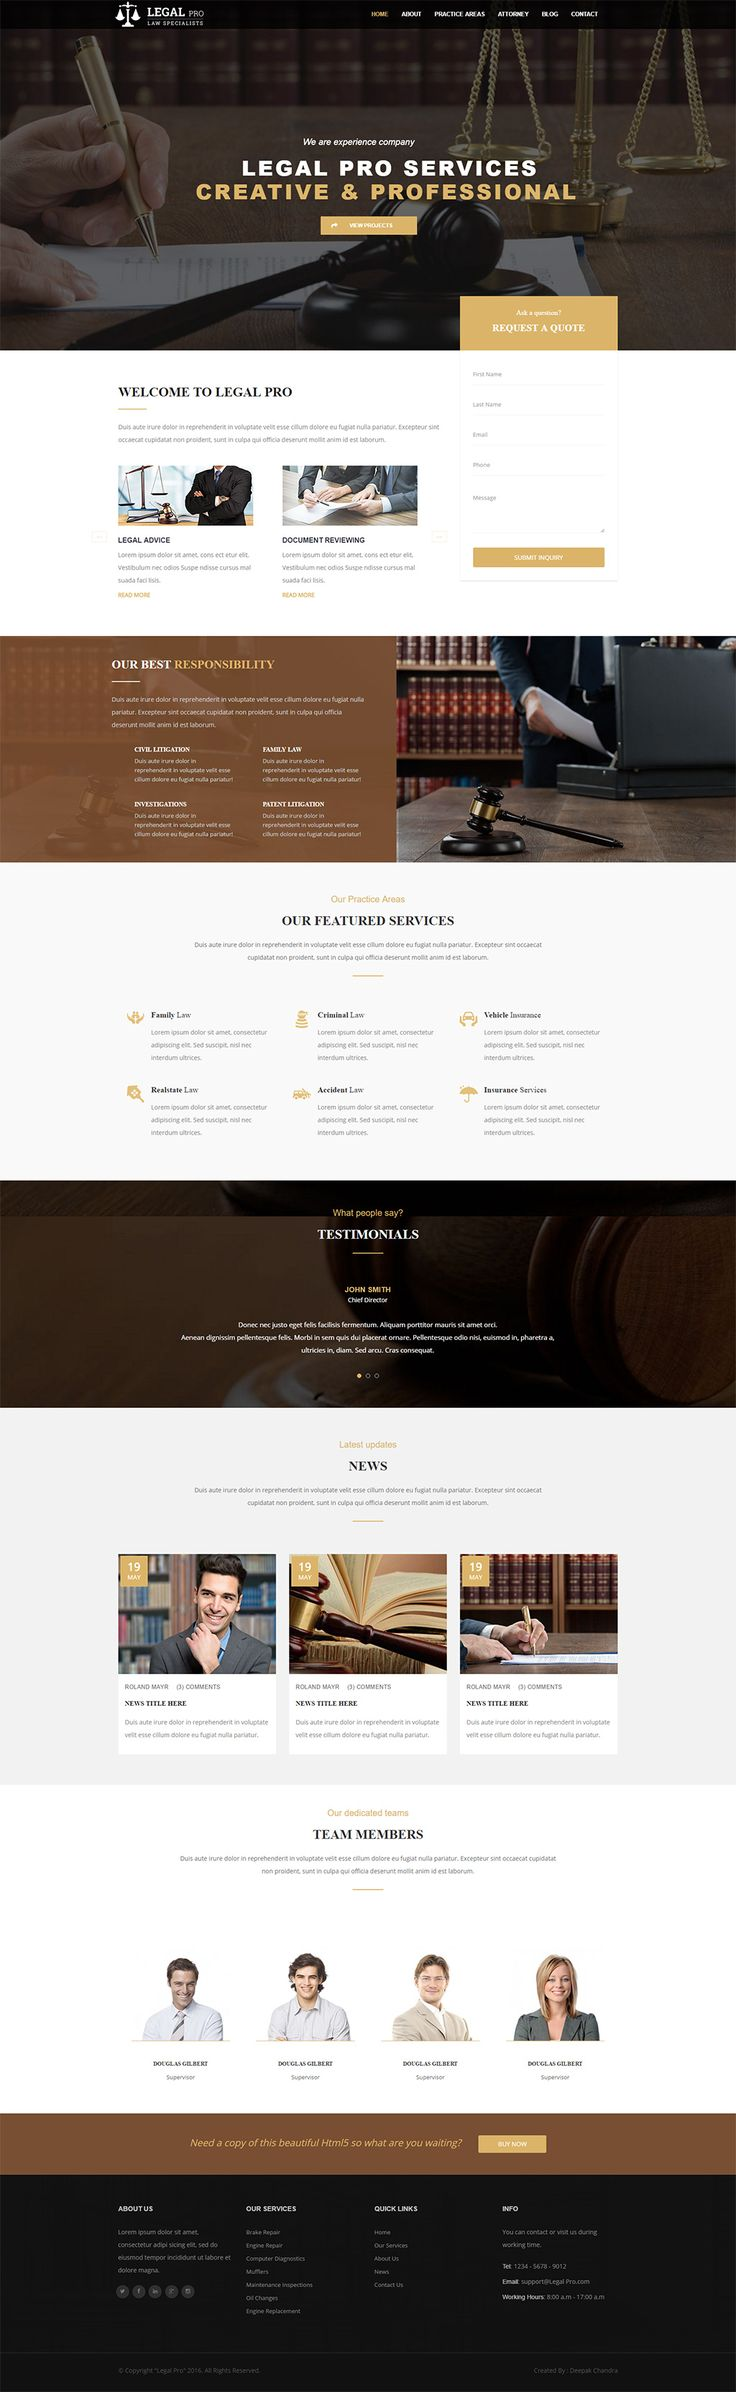 Legal Pro - Law/Legal Business Template, Corporate Business